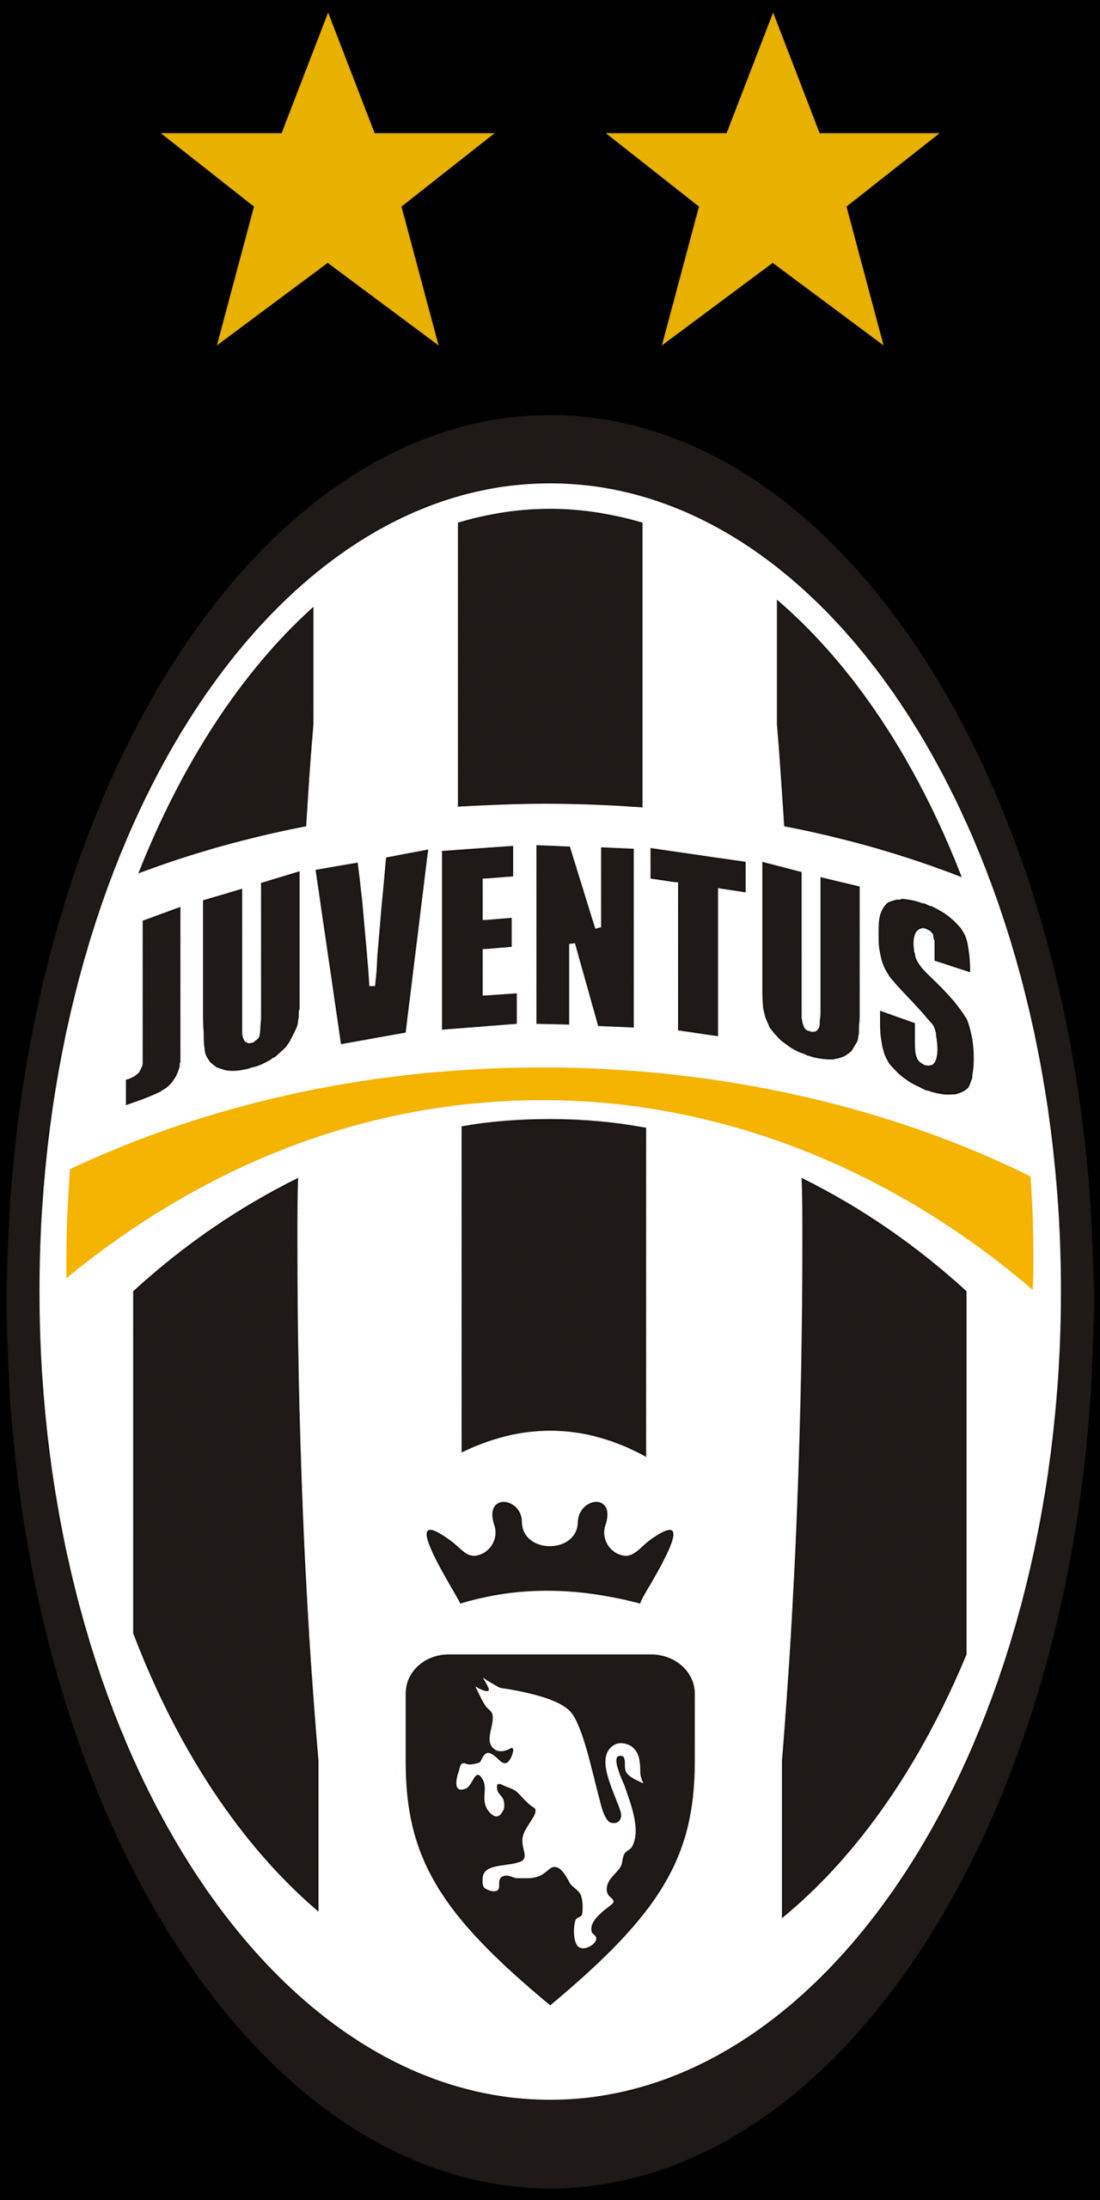 fonds d 39 cran juventus logo maximumwall. Black Bedroom Furniture Sets. Home Design Ideas